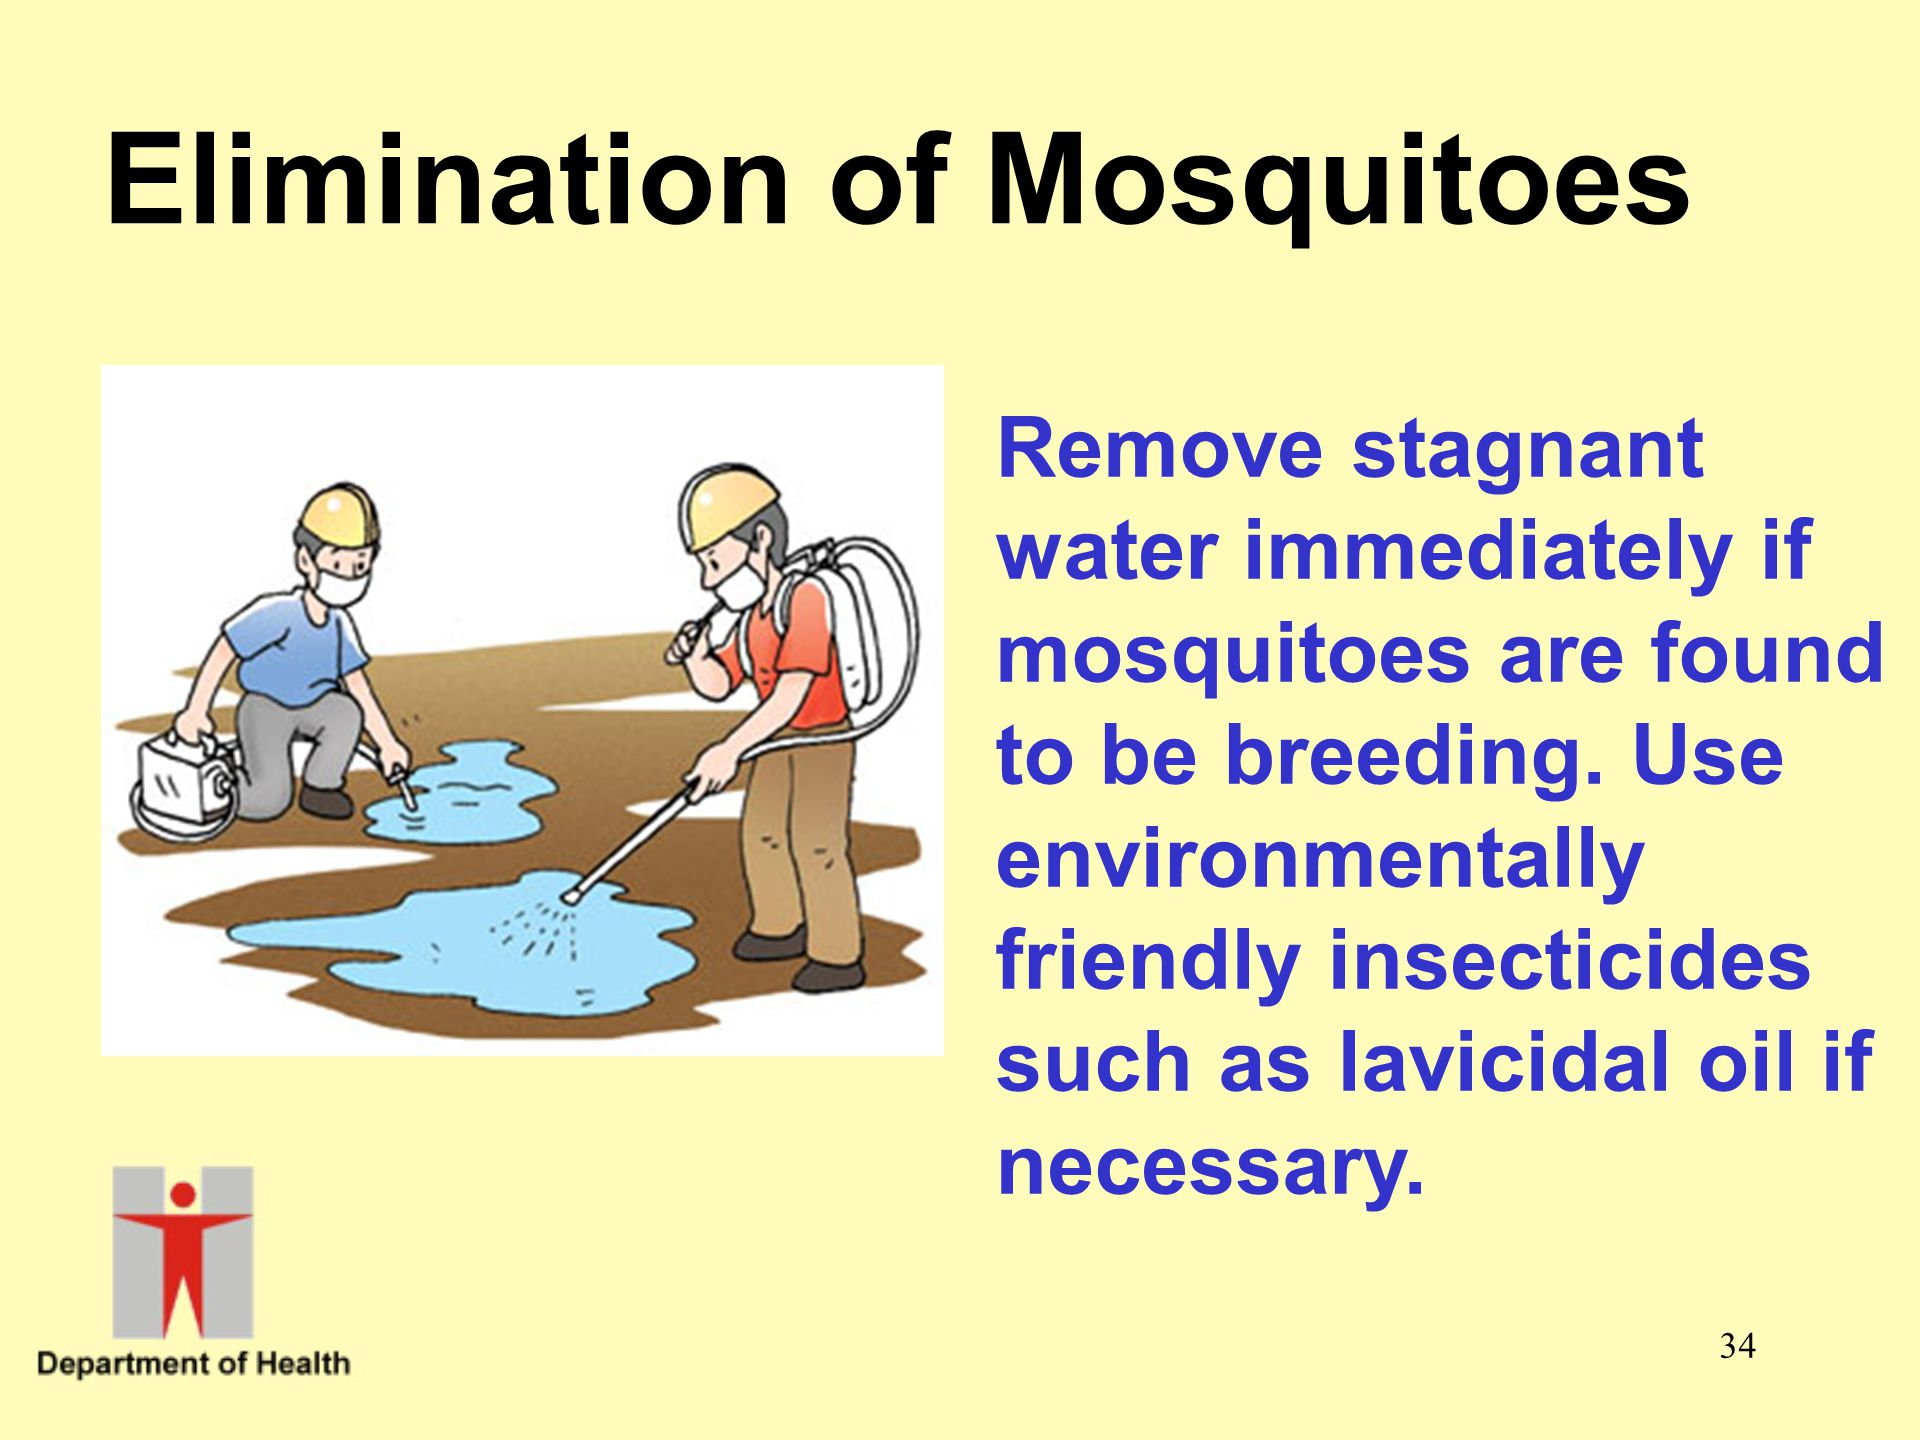 34 Elimination of Mosquitoes Remove stagnant water immediately if mosquitoes are found to be breeding. Use environmentally friendly insecticides such